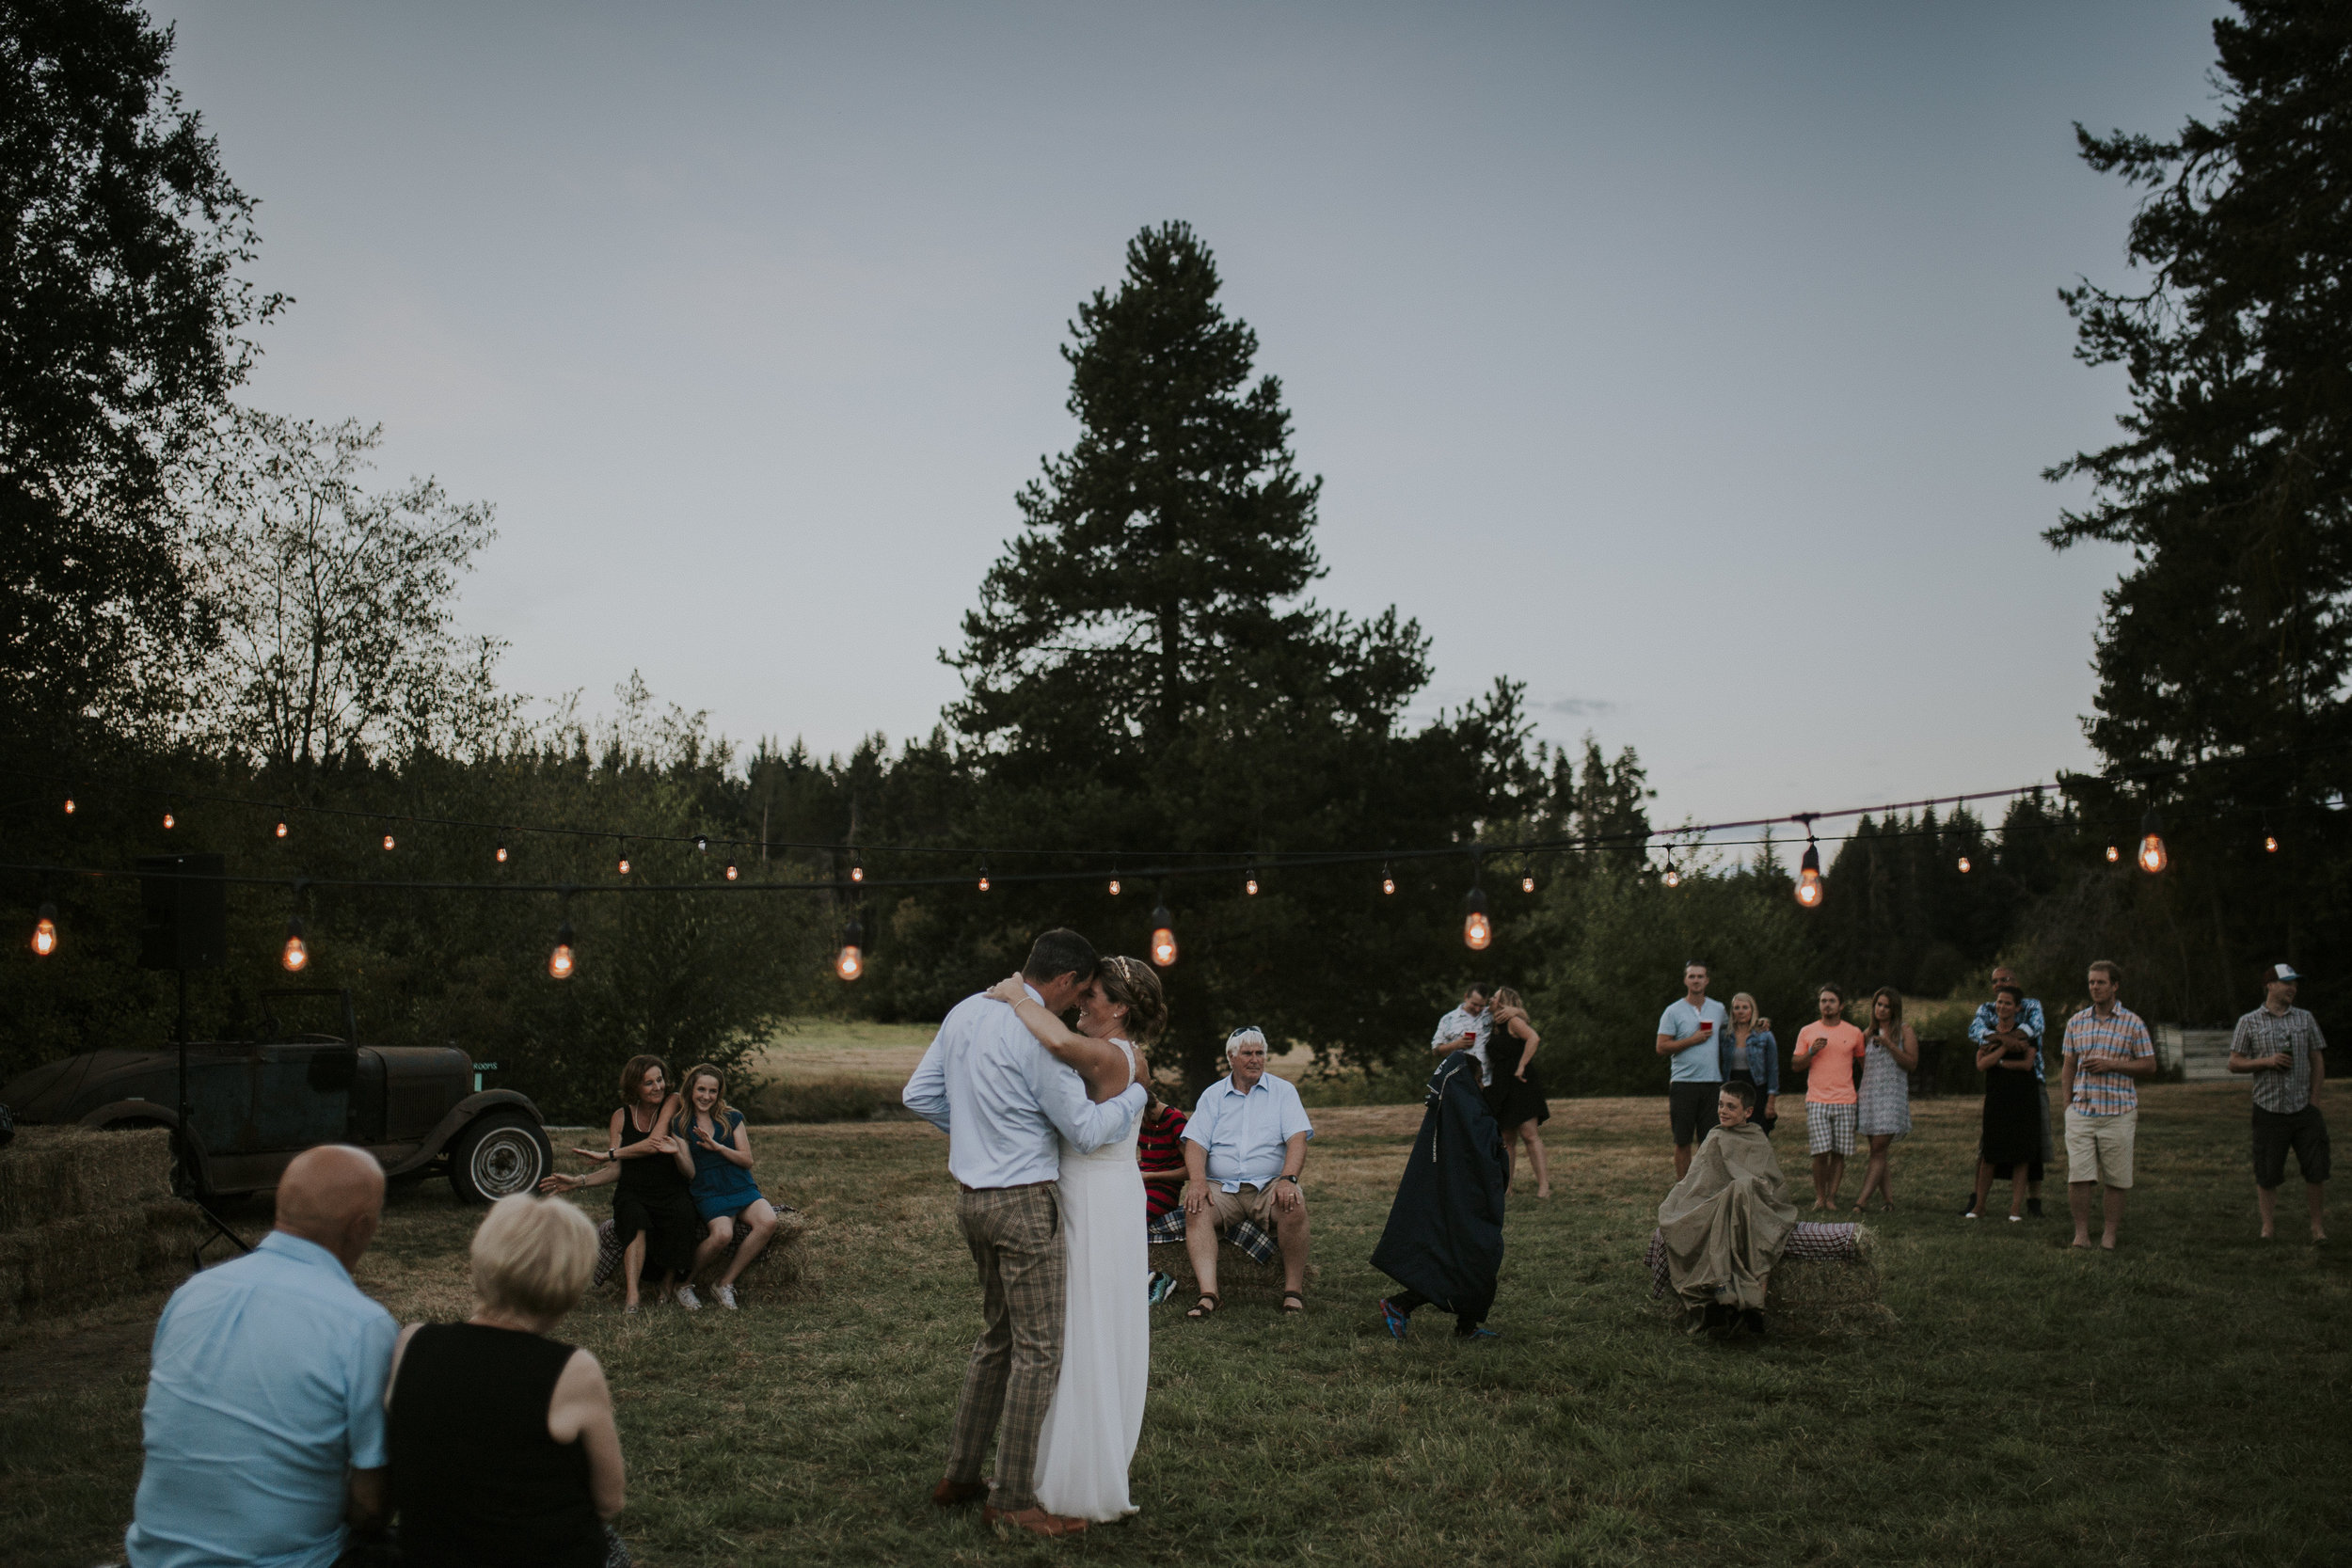 Newly wed couple dancing Wedding reception at the Guild King Francis Park Forest wedding ceremony Vancouver Island